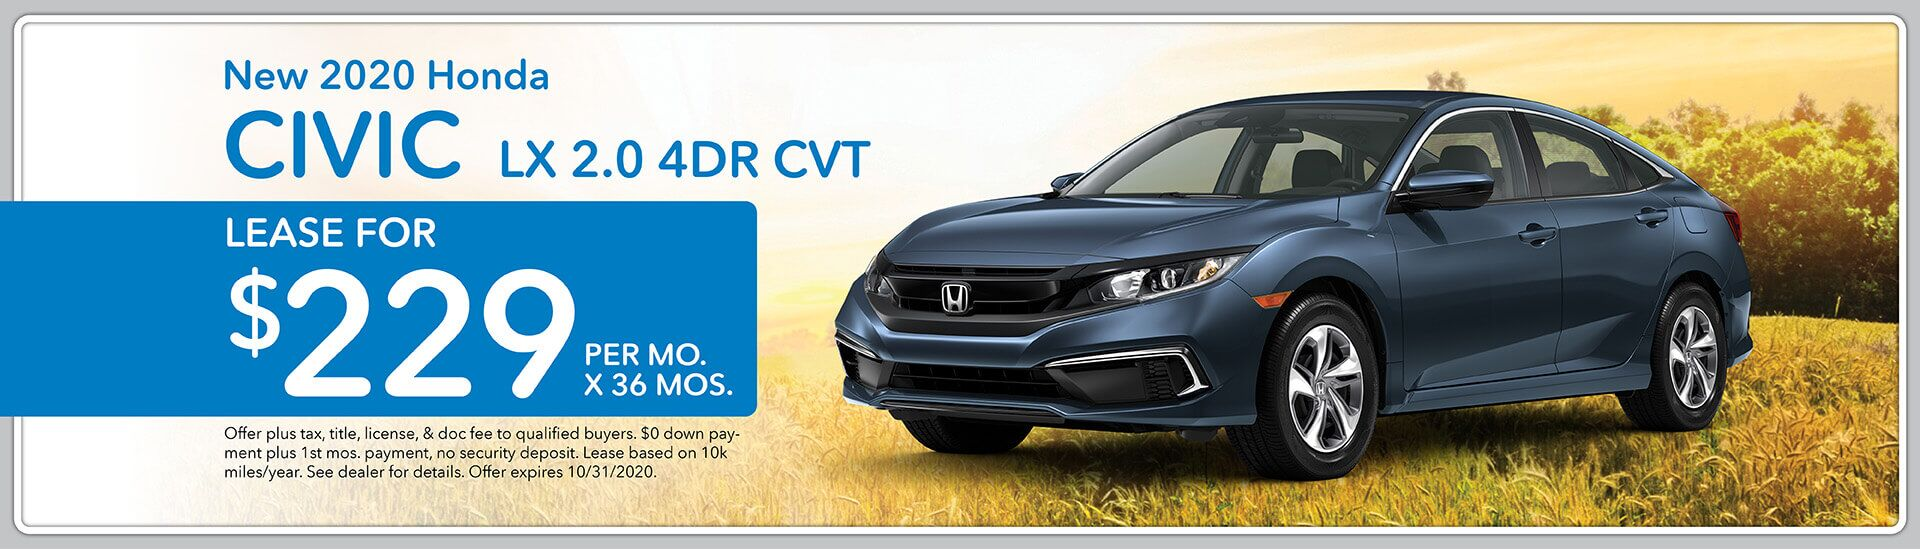 2020 Honda Civic LX, Lease for $229/mo. for 36 mos.   Green Bay, WI